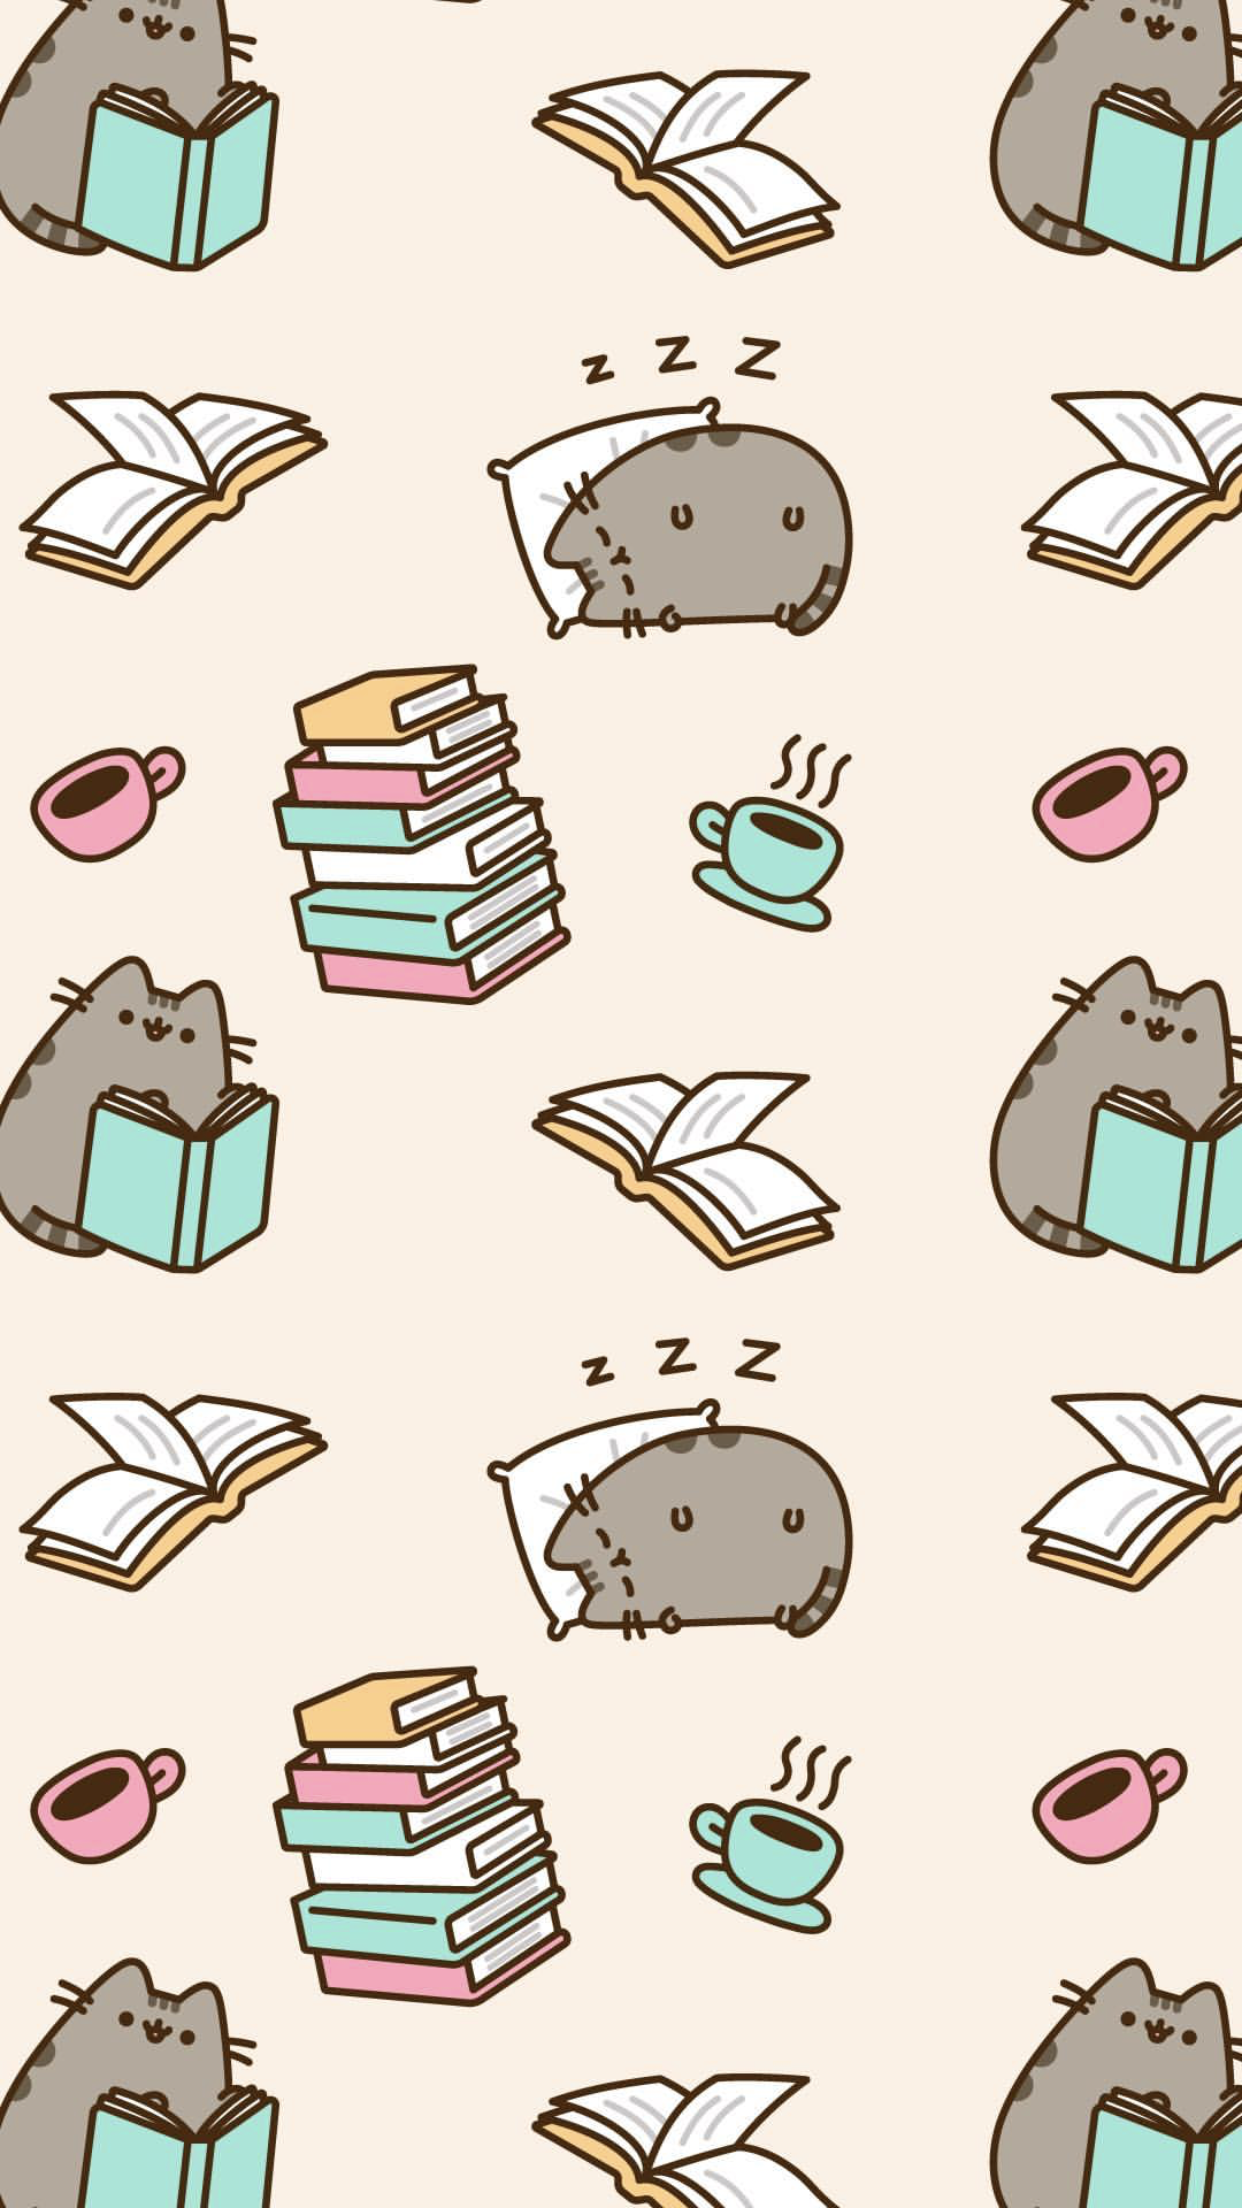 Pusheen The Cat Iphone Wallpaper Pusheen Cat Pusheen Cute Cute Wallpaper For Phone